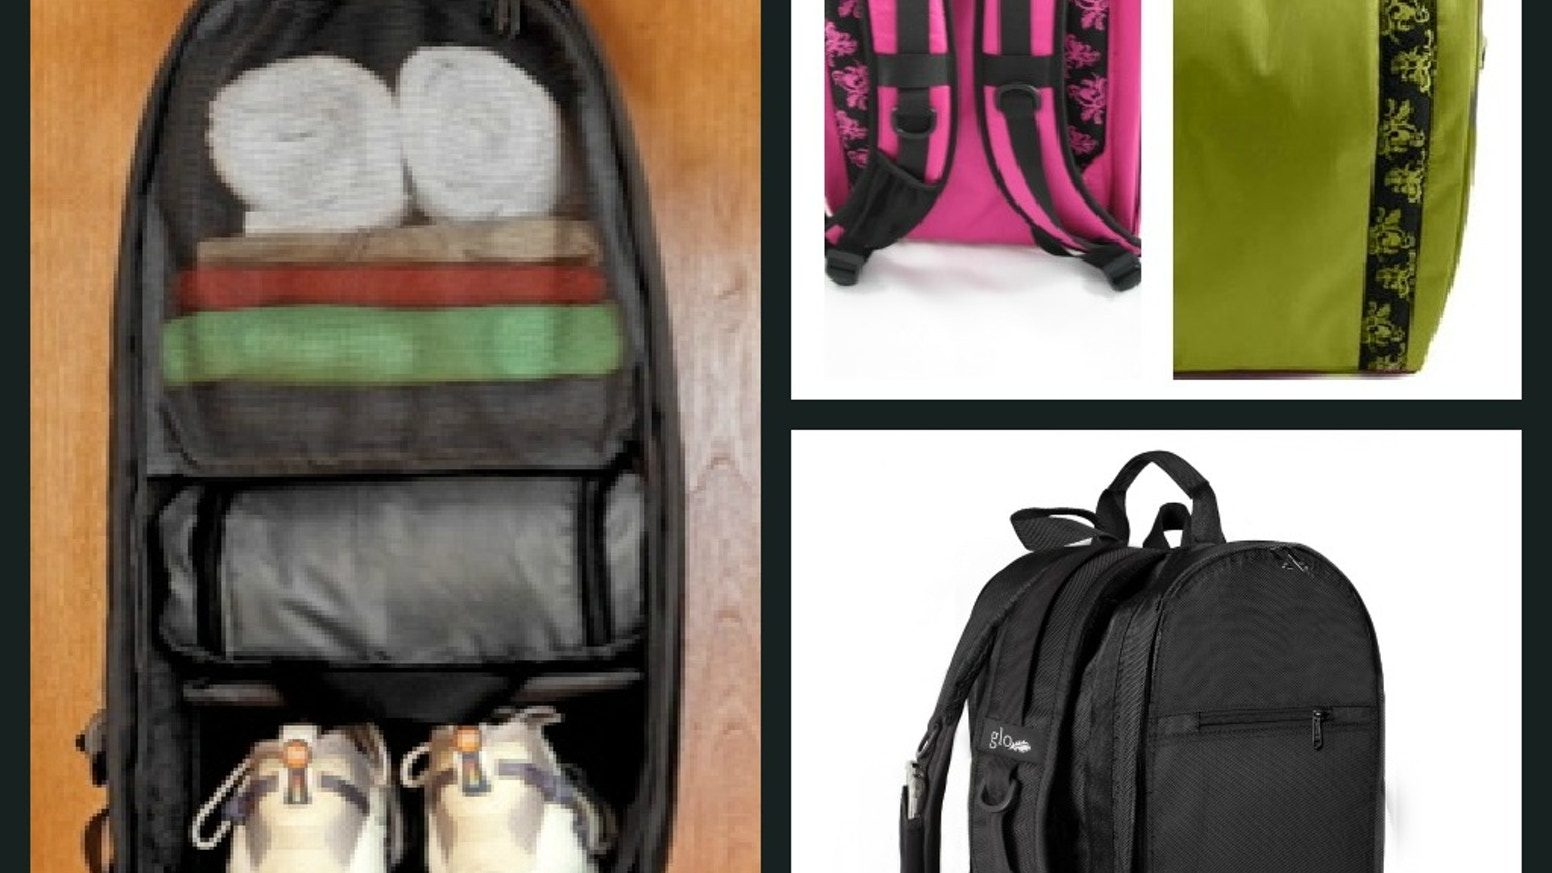 eeb69386e6 GLO BAG - Stay Organized at the Gym and on the go! The Ultimate gym locker  organizer ...